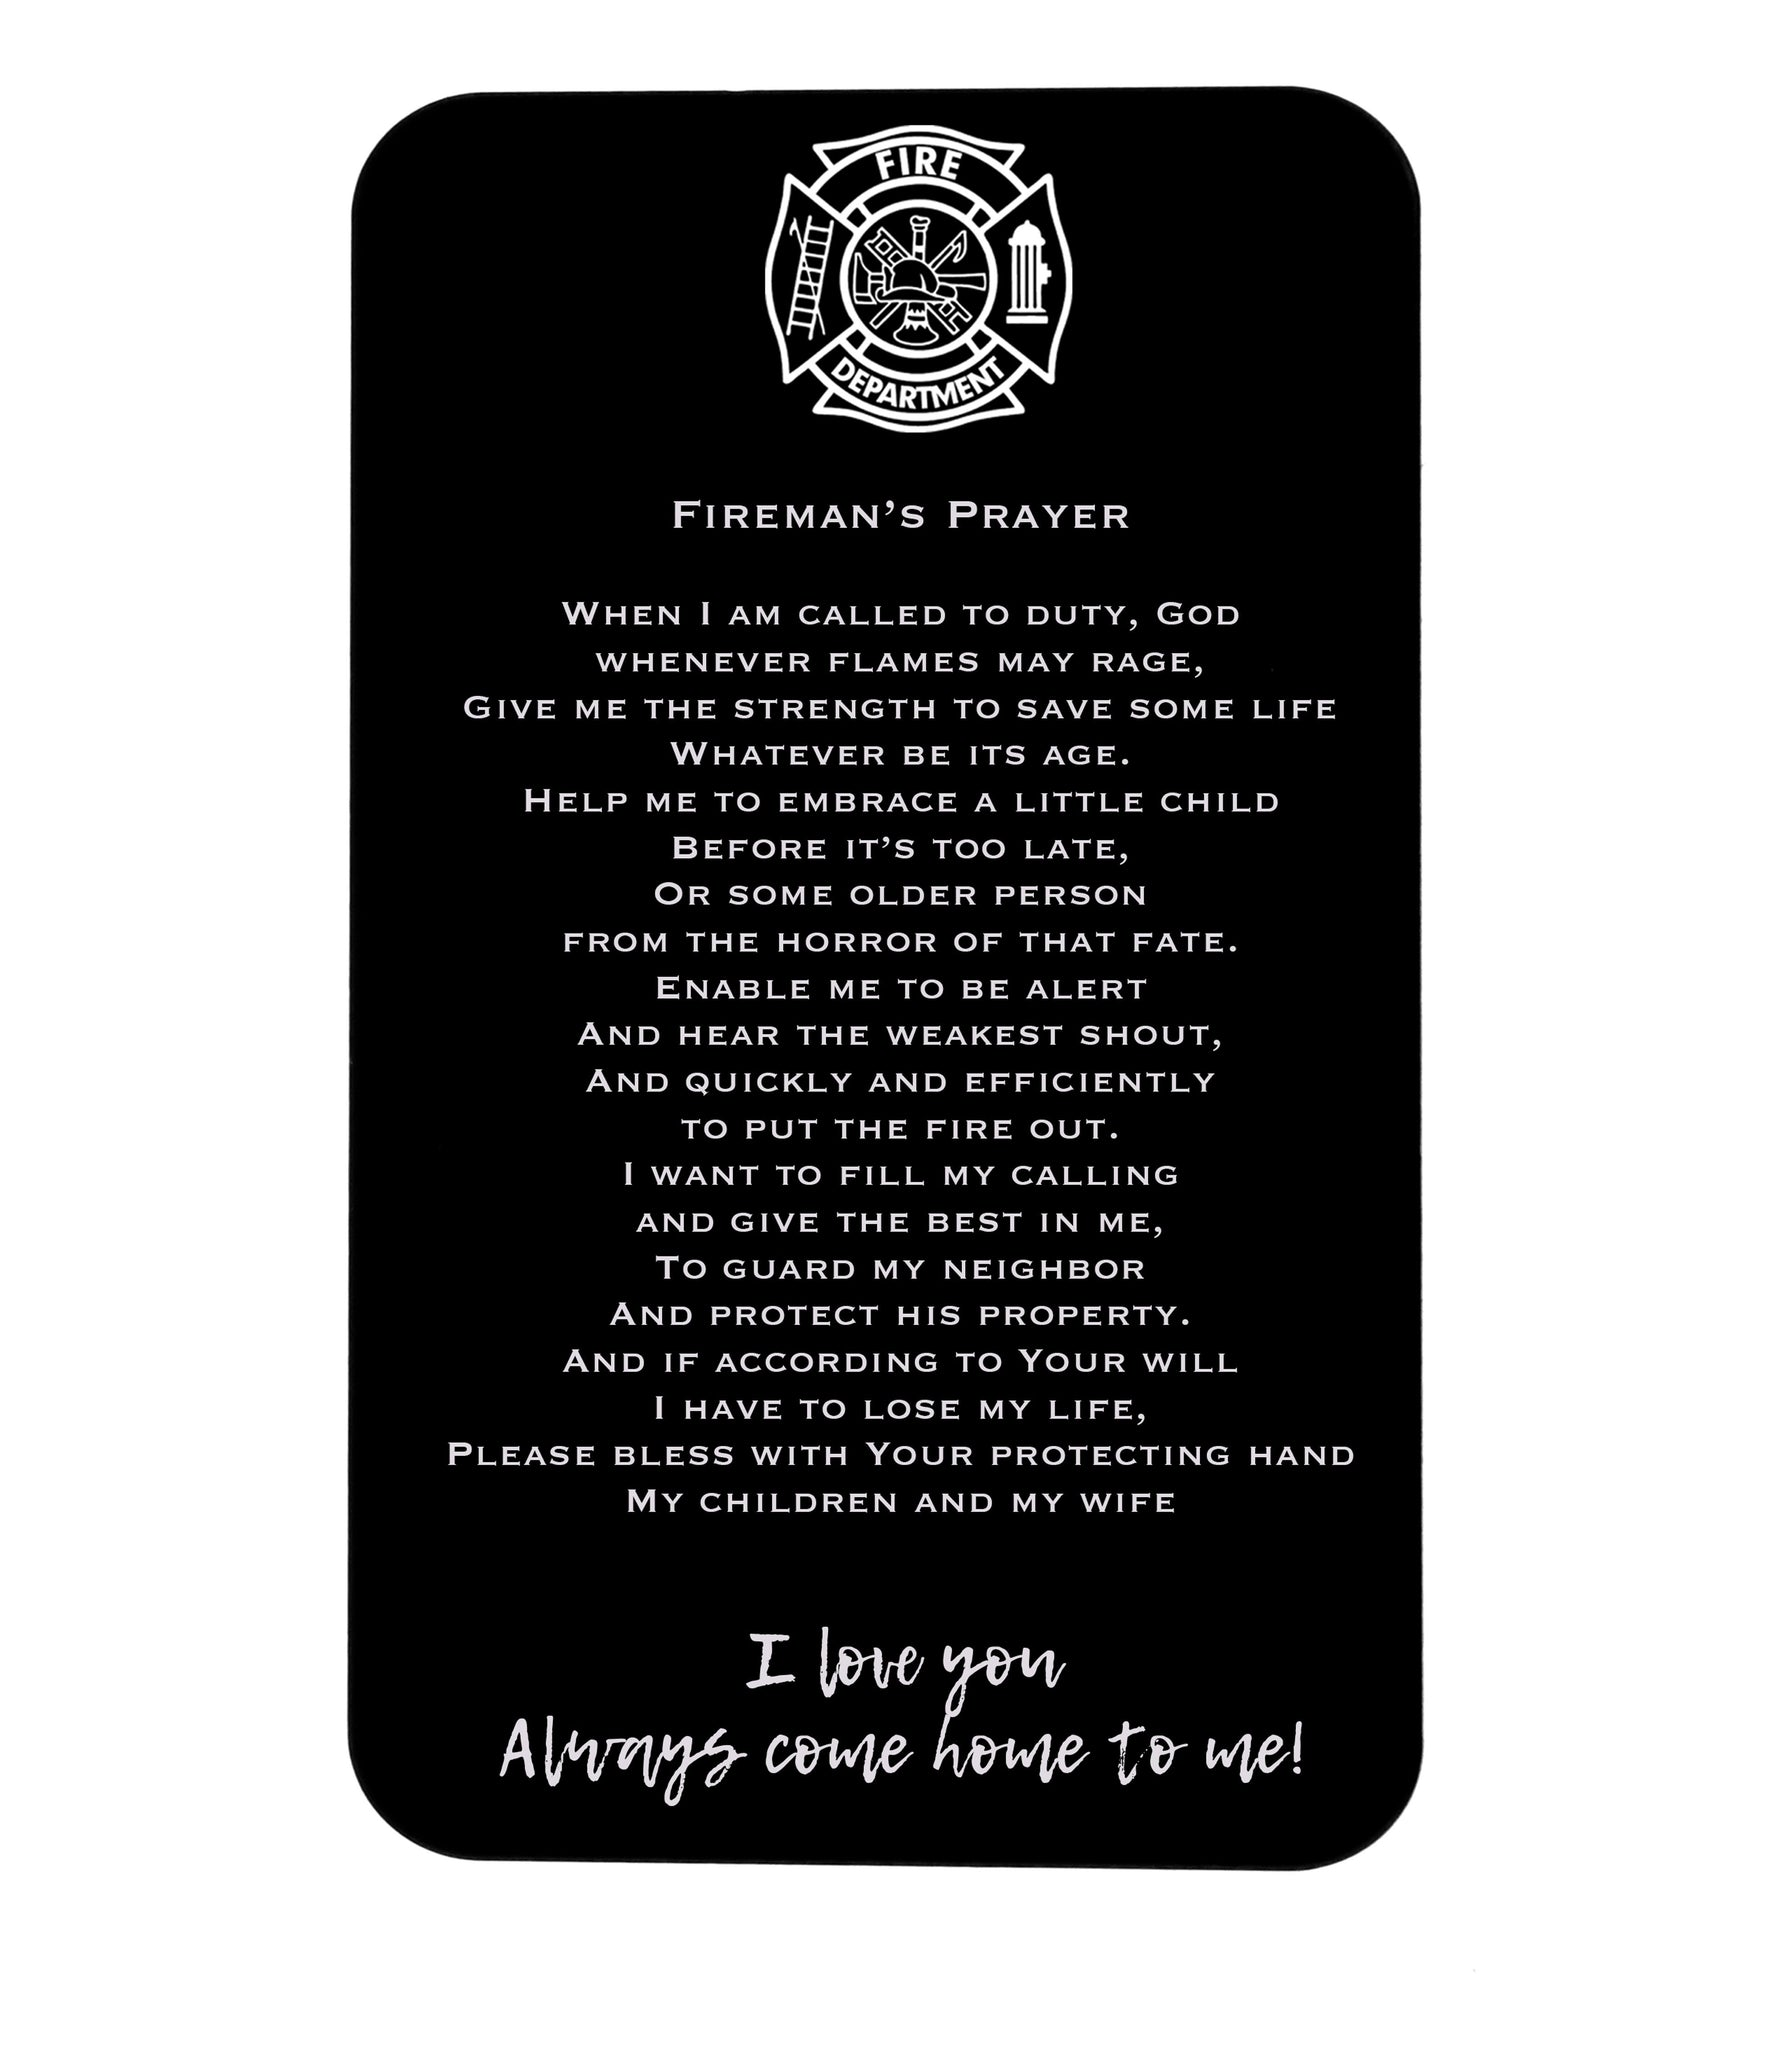 fireman's prayer wallet insert card